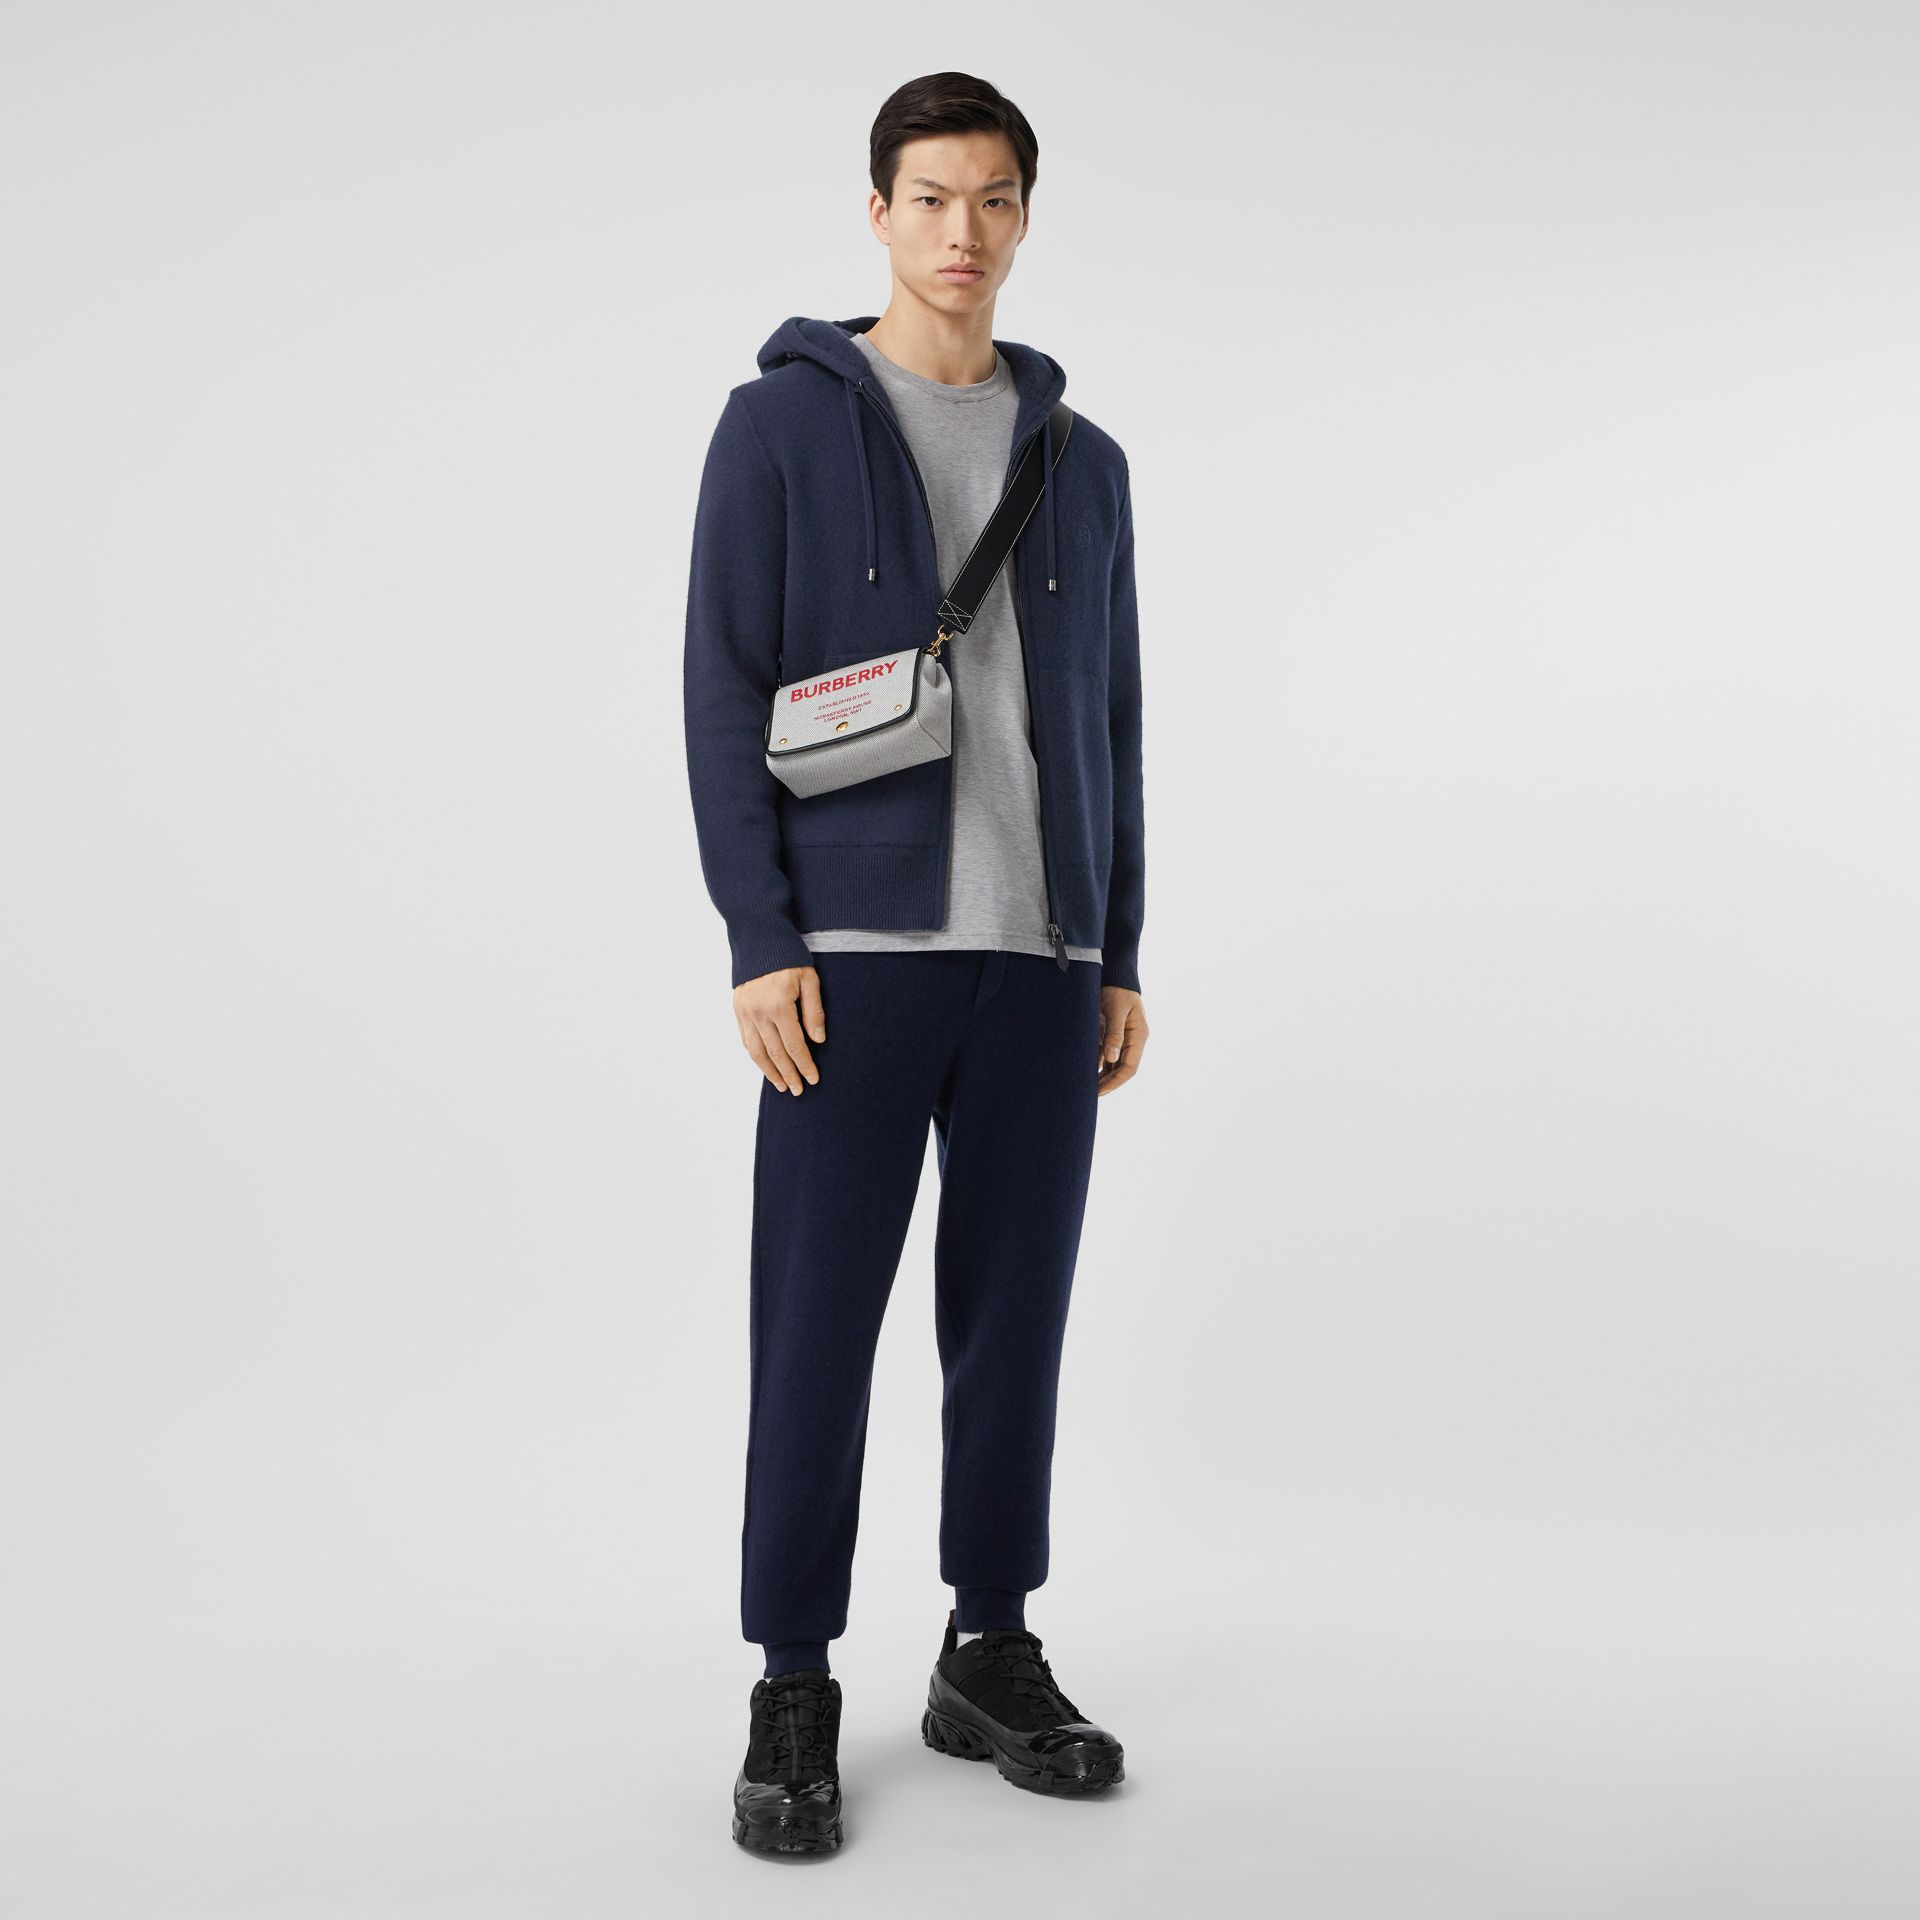 Monogram Motif Cashmere Blend Hooded Top in Navy - Men | Burberry - gallery image 4